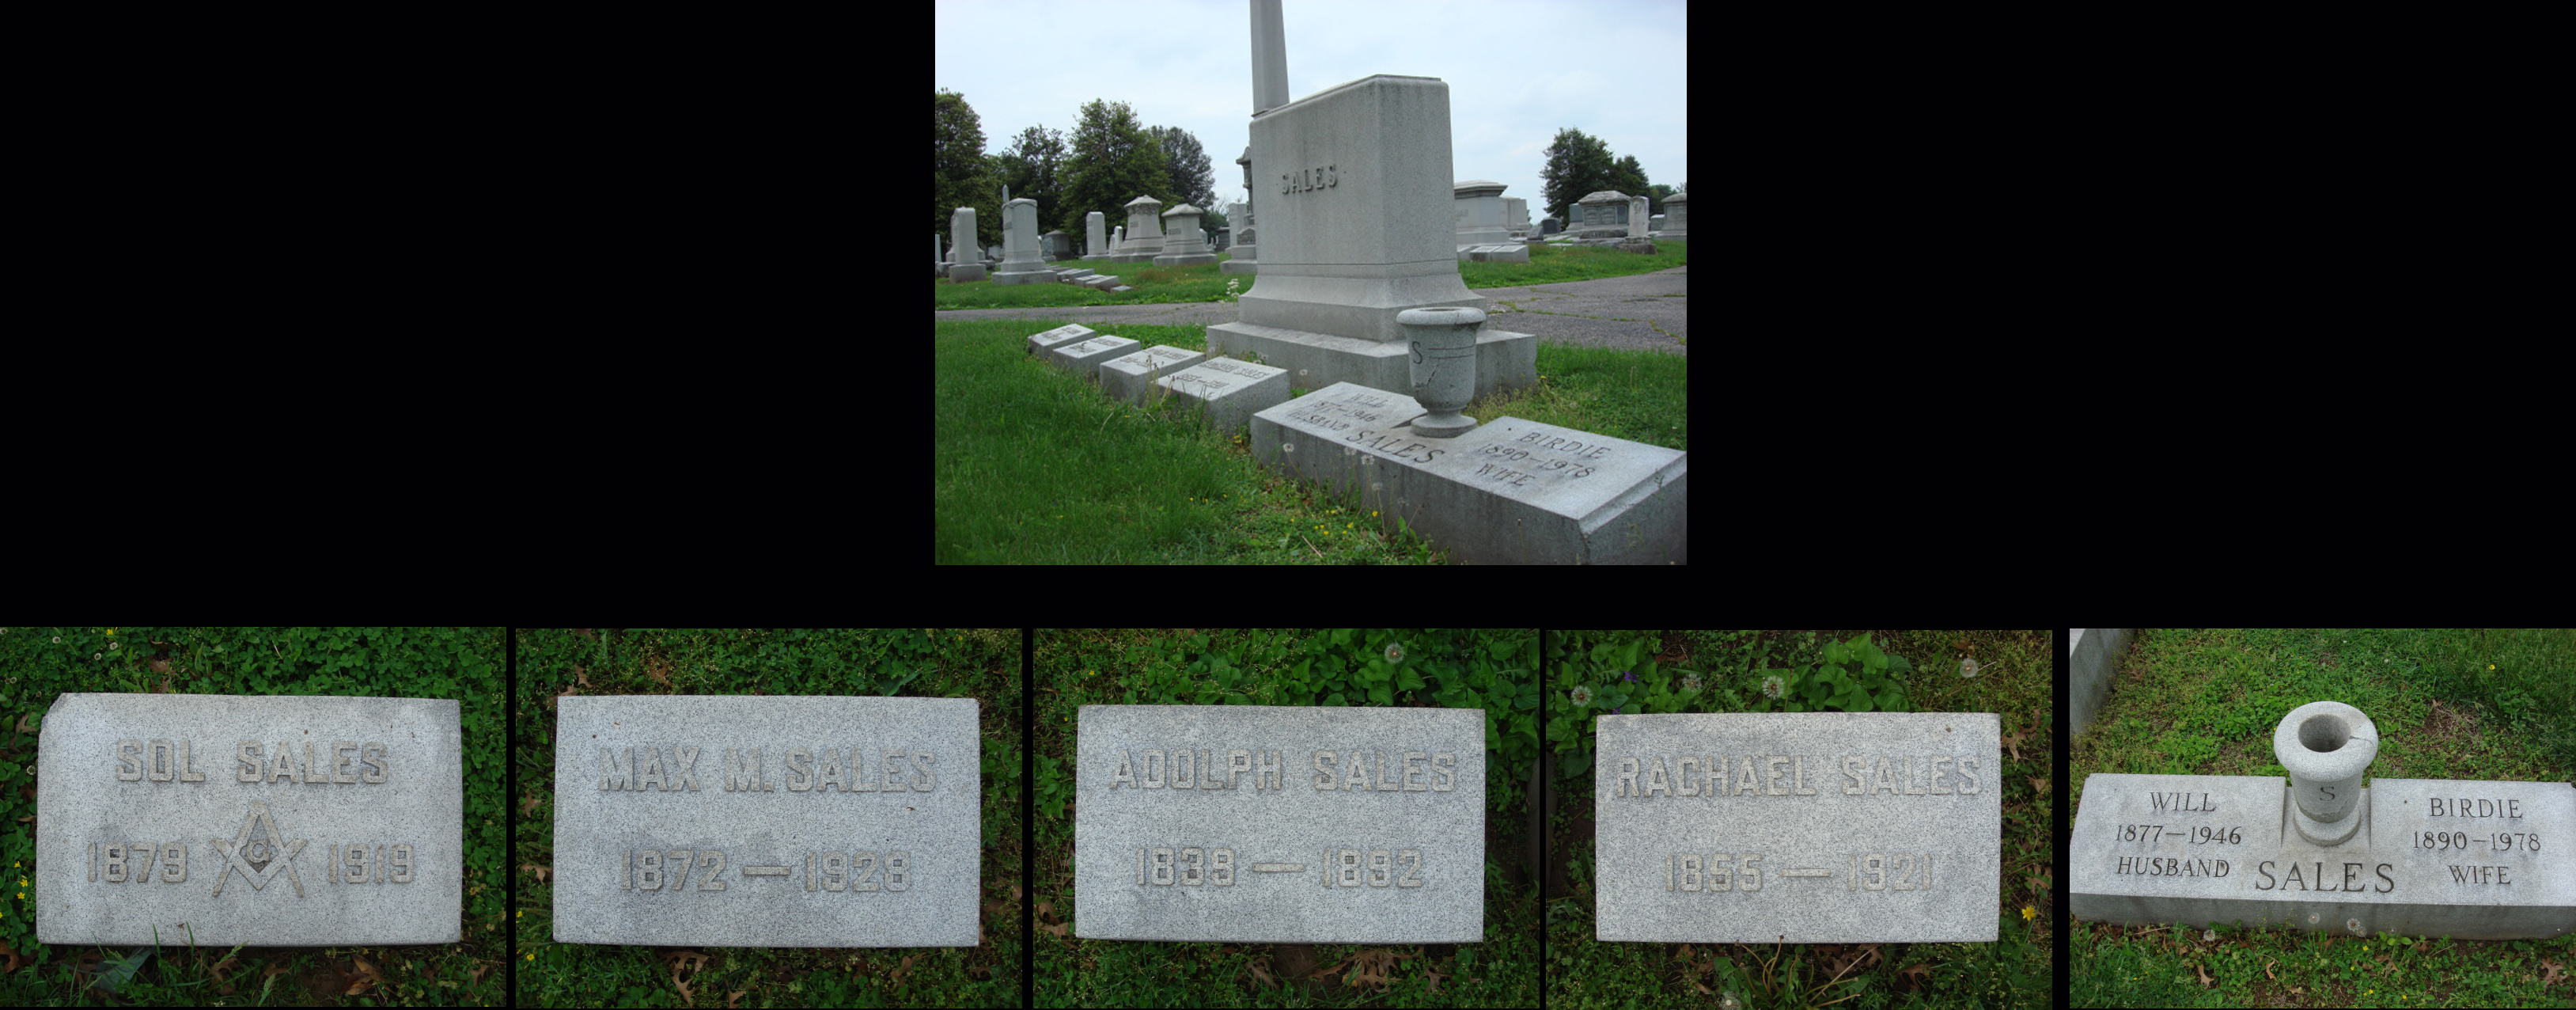 The Temple Cemetery – STU – Herman Meyer and Son, Inc